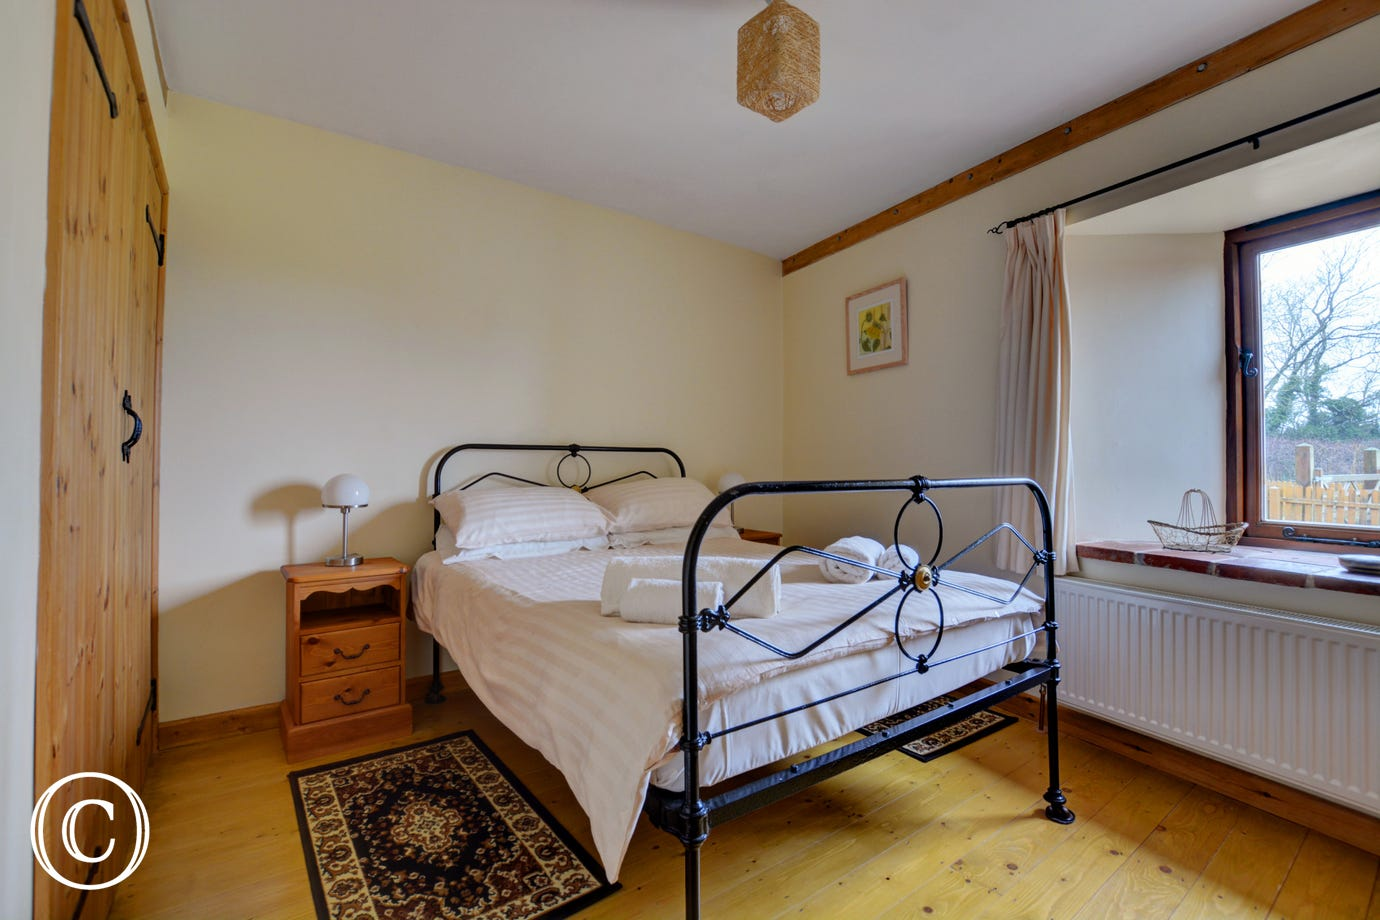 The second double bedroom with feature iron bed.  Wooden floors with cosy rugs beside the bed